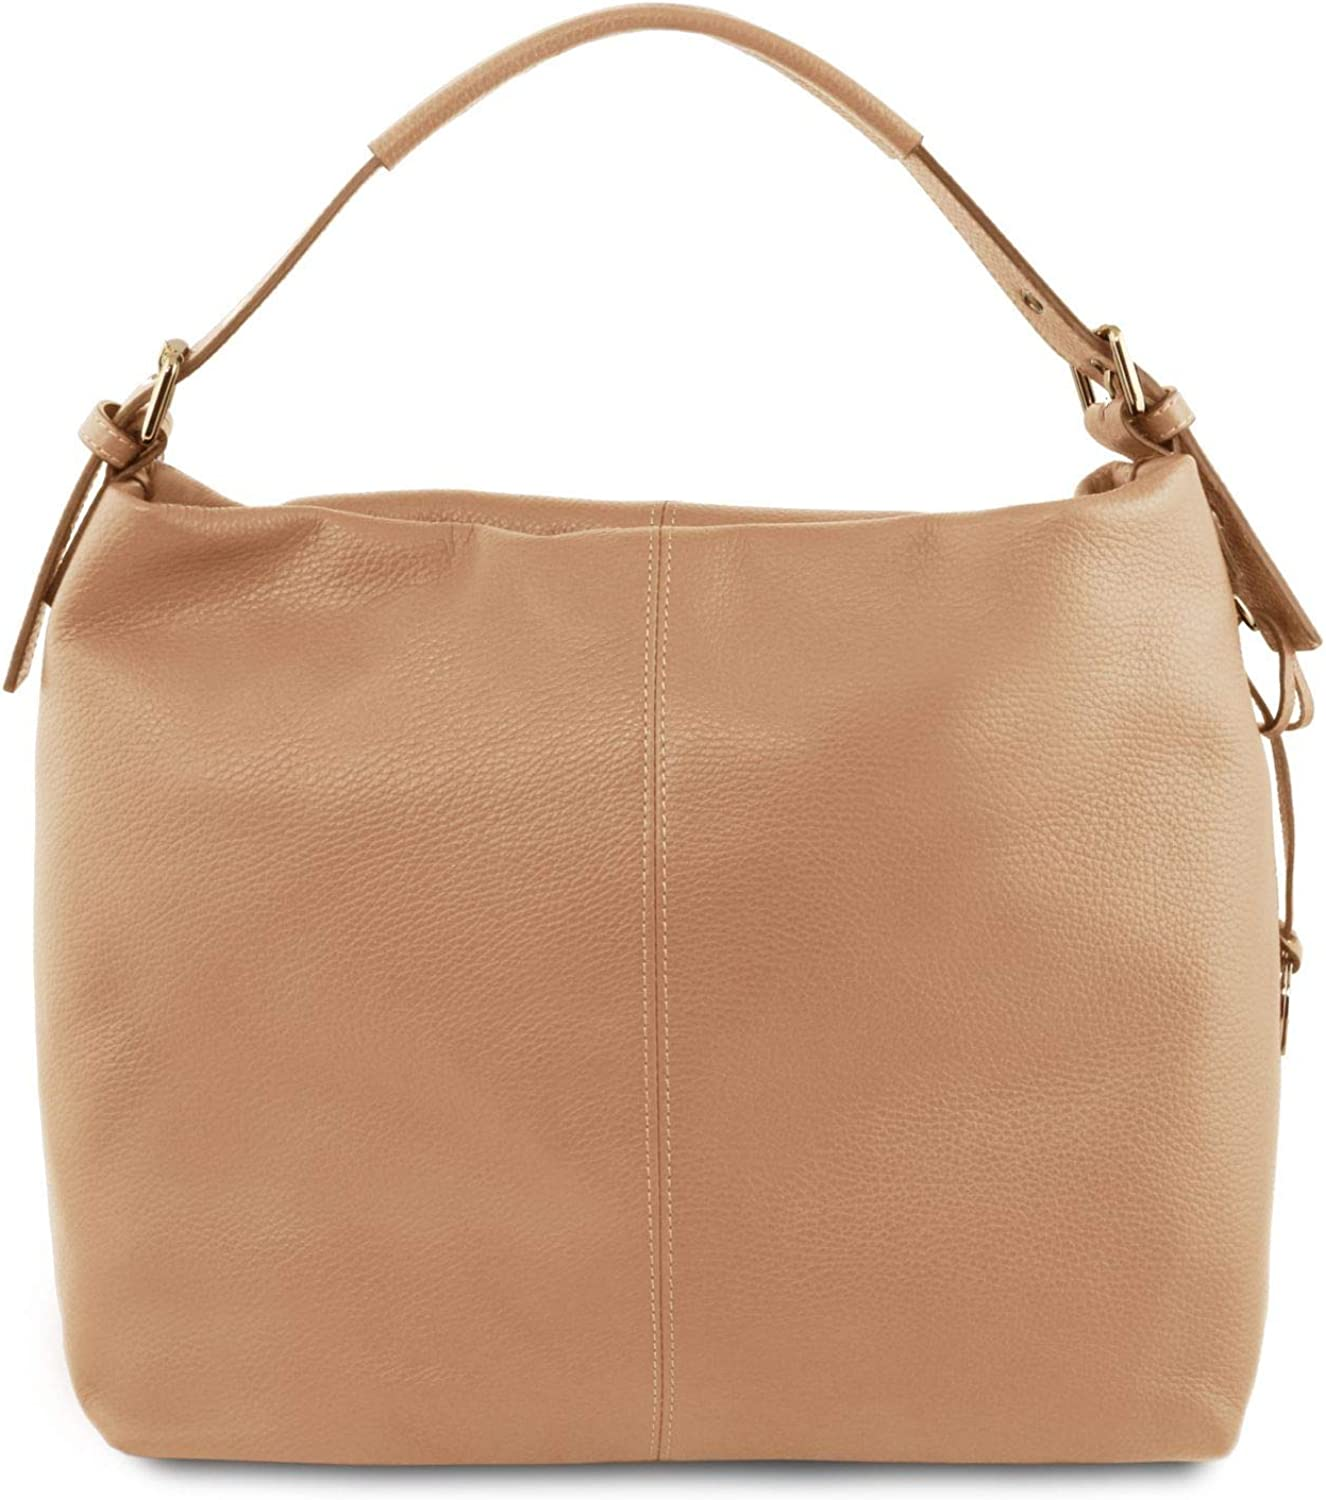 Tuscany Leather TLBag Soft Leather Bag  TL141719 (Champagne)